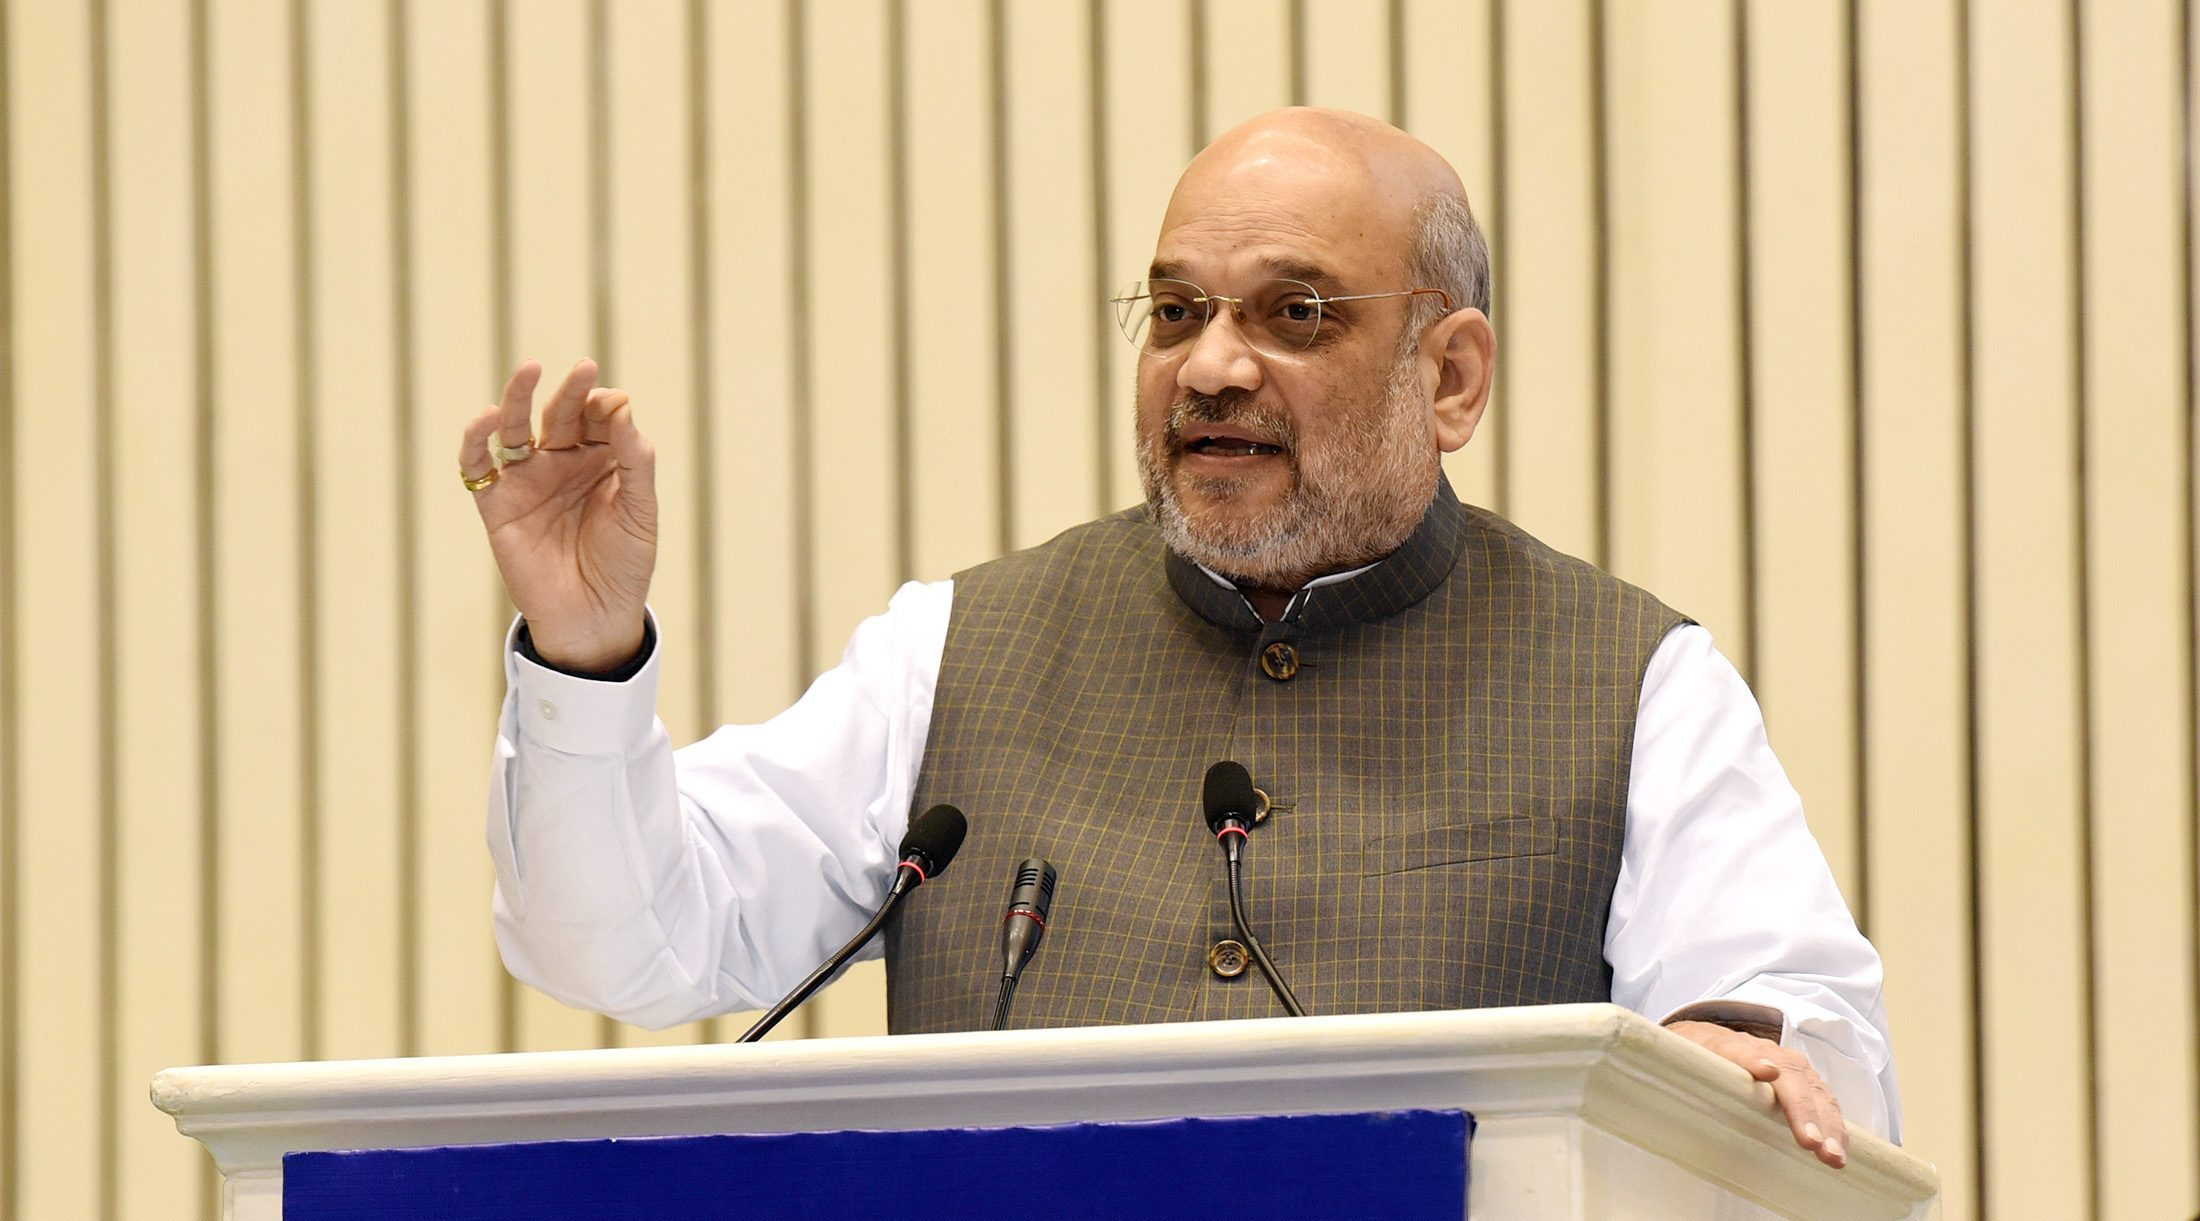 The Union Home Minister, Shri Amit Shah addressing the inaugural session of the 14th Annual Convention of the Central Information Commission, in New Delhi on October 12, 2019.